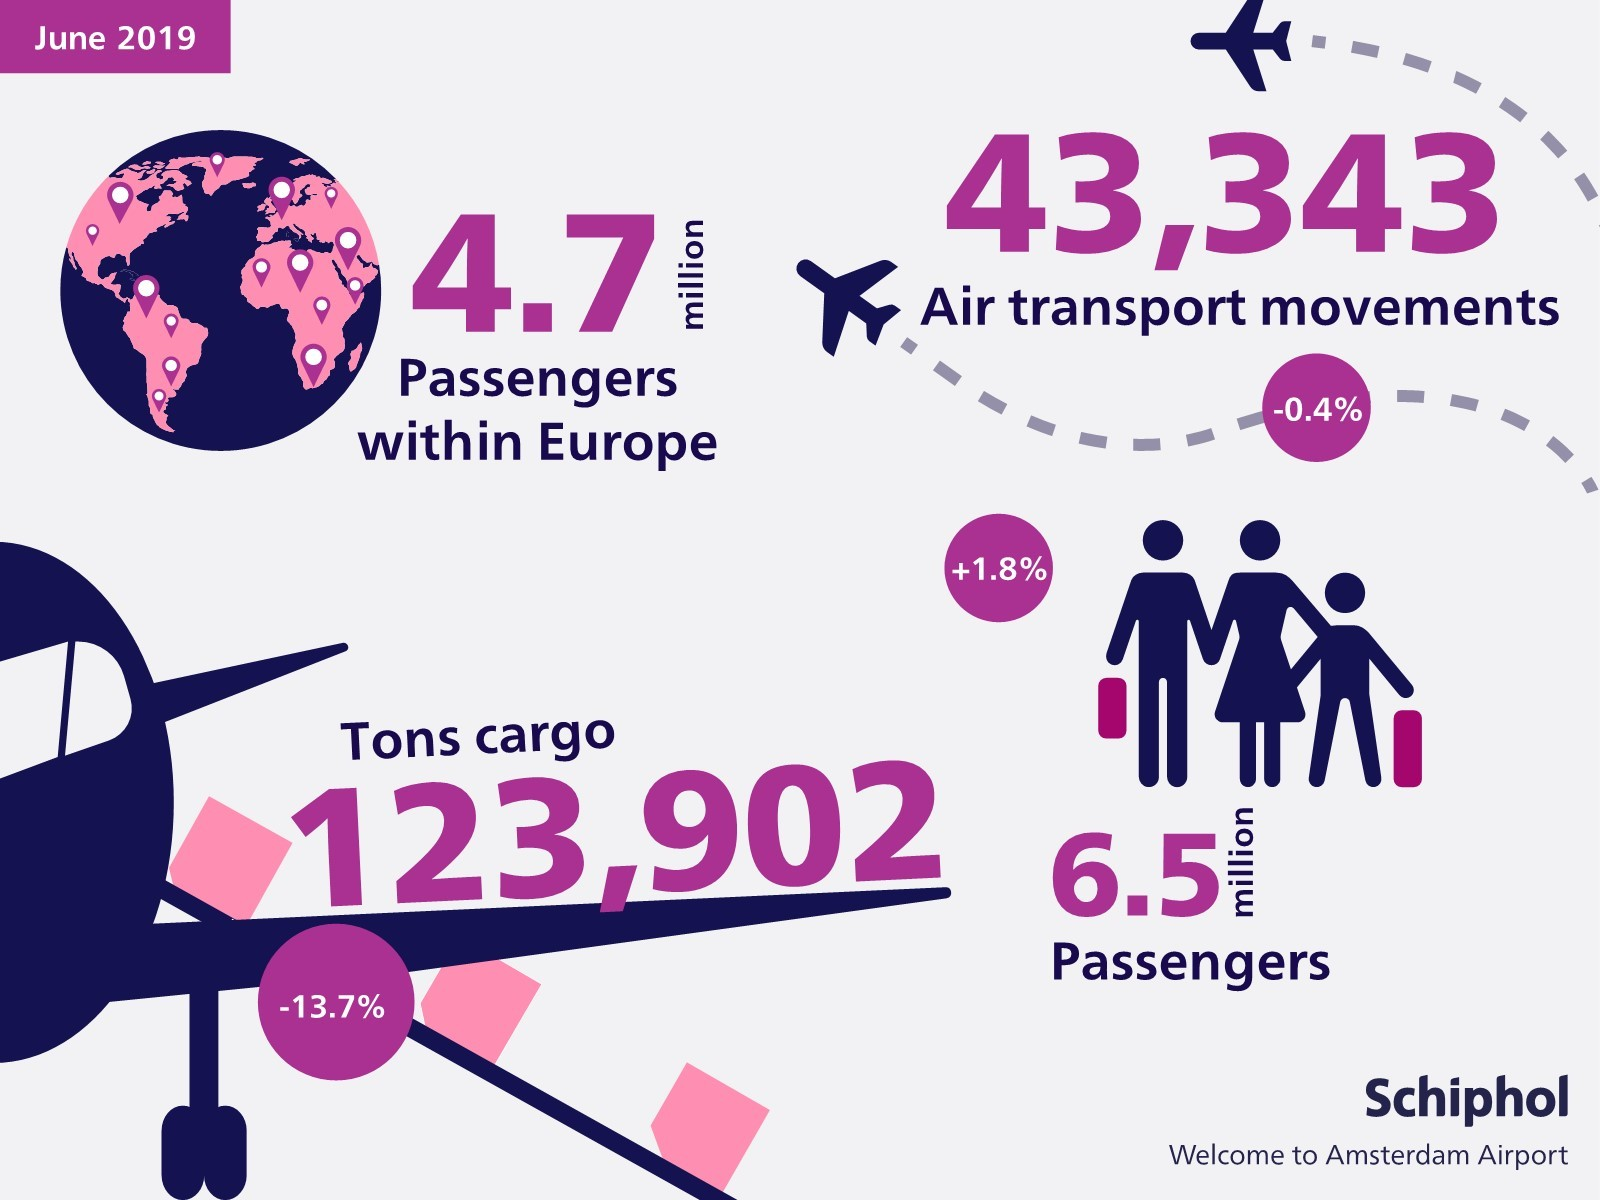 Traffic and transport figures for June 2019